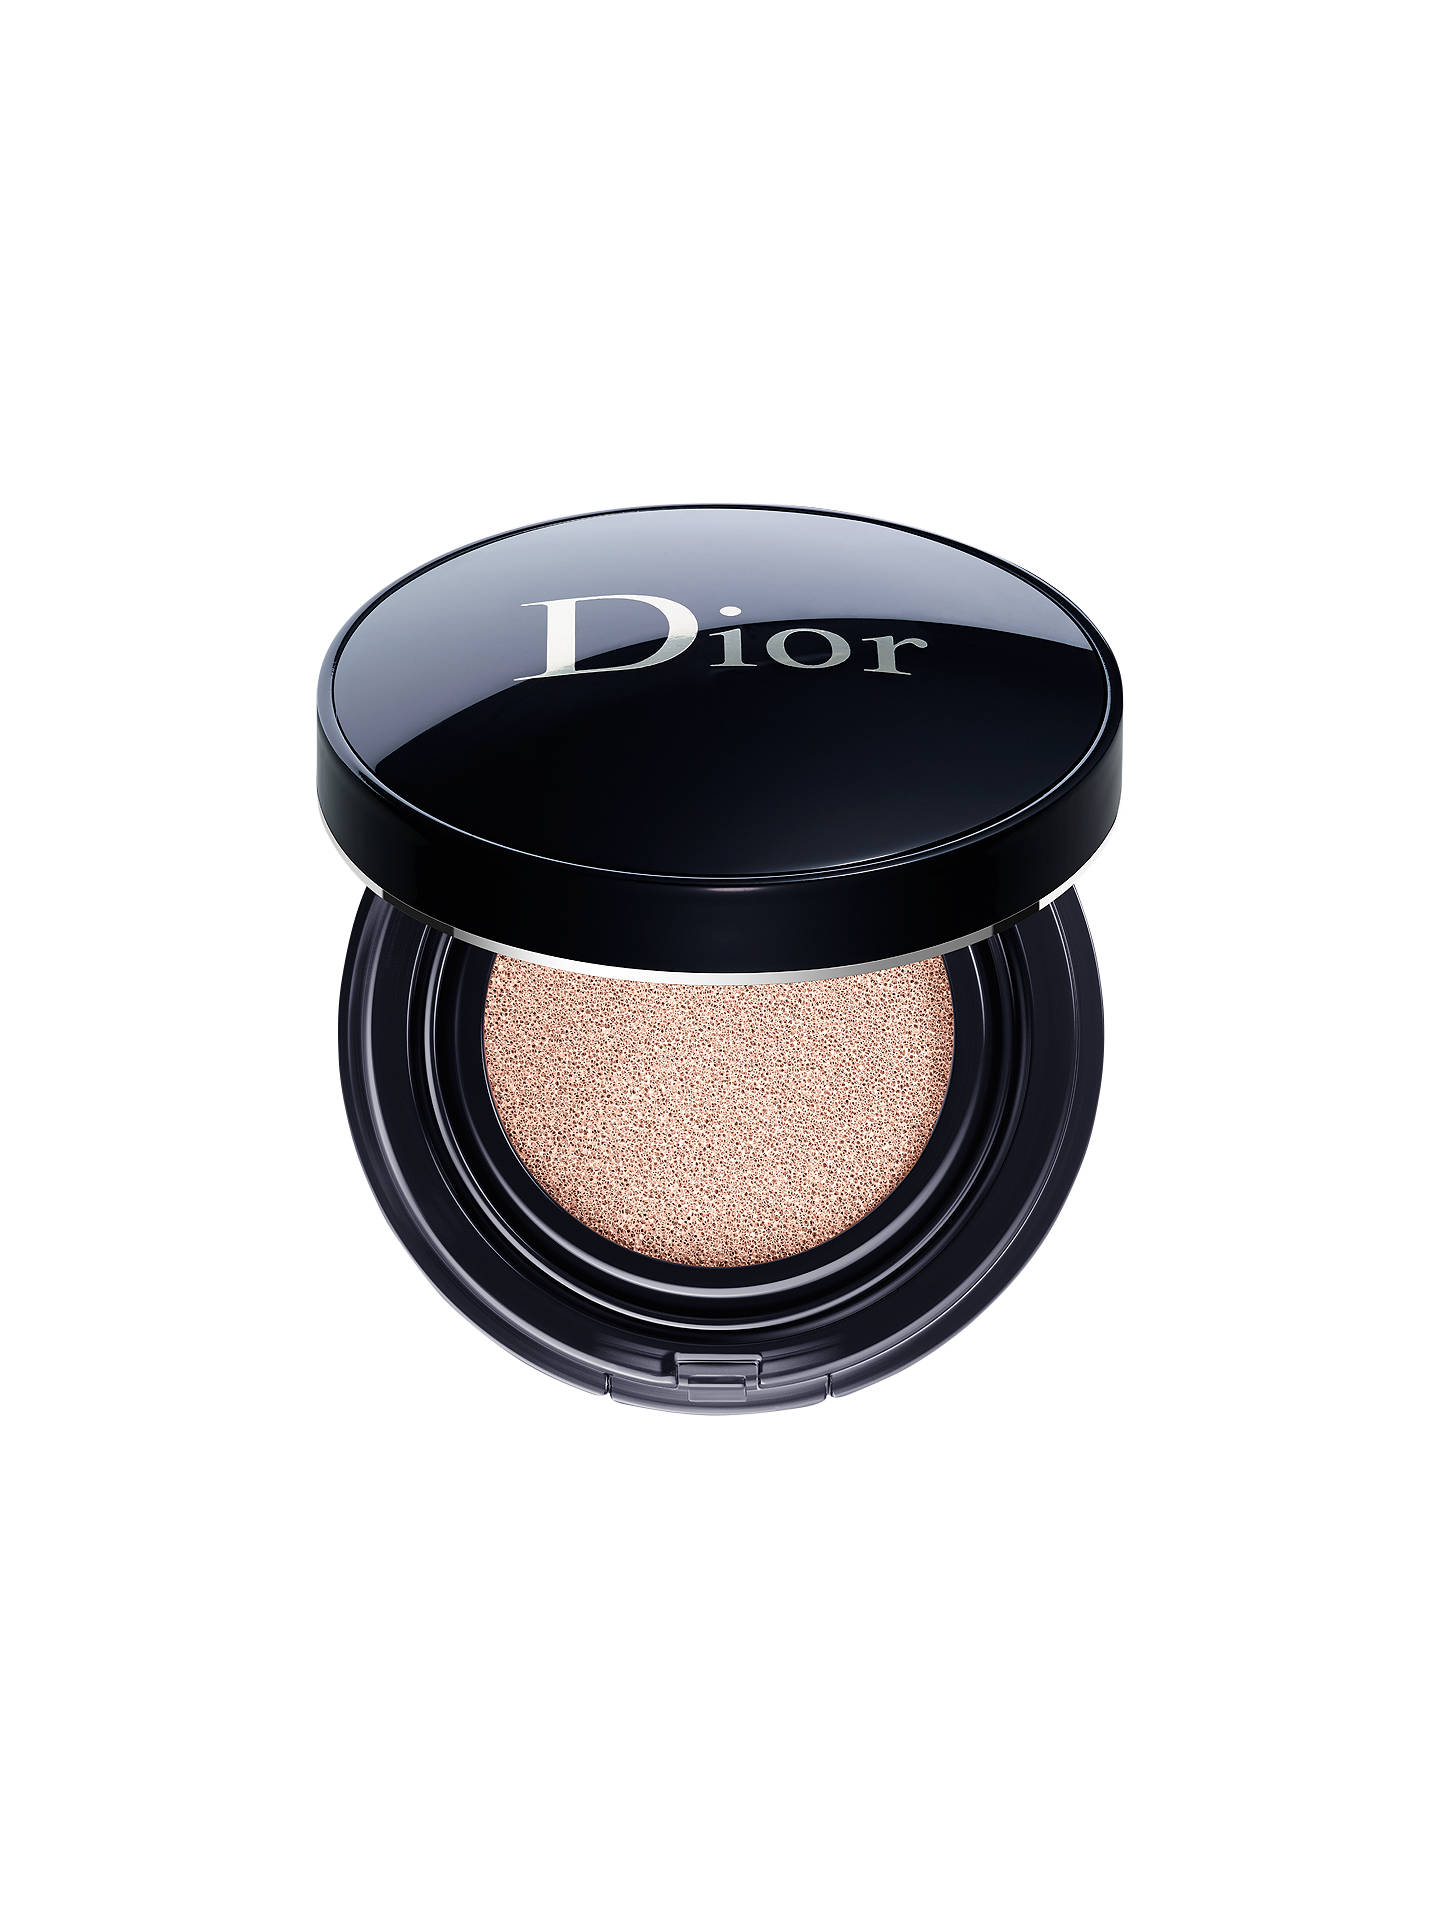 Dior Diorskin Forever Perfect Cushion Foundation Pocelain